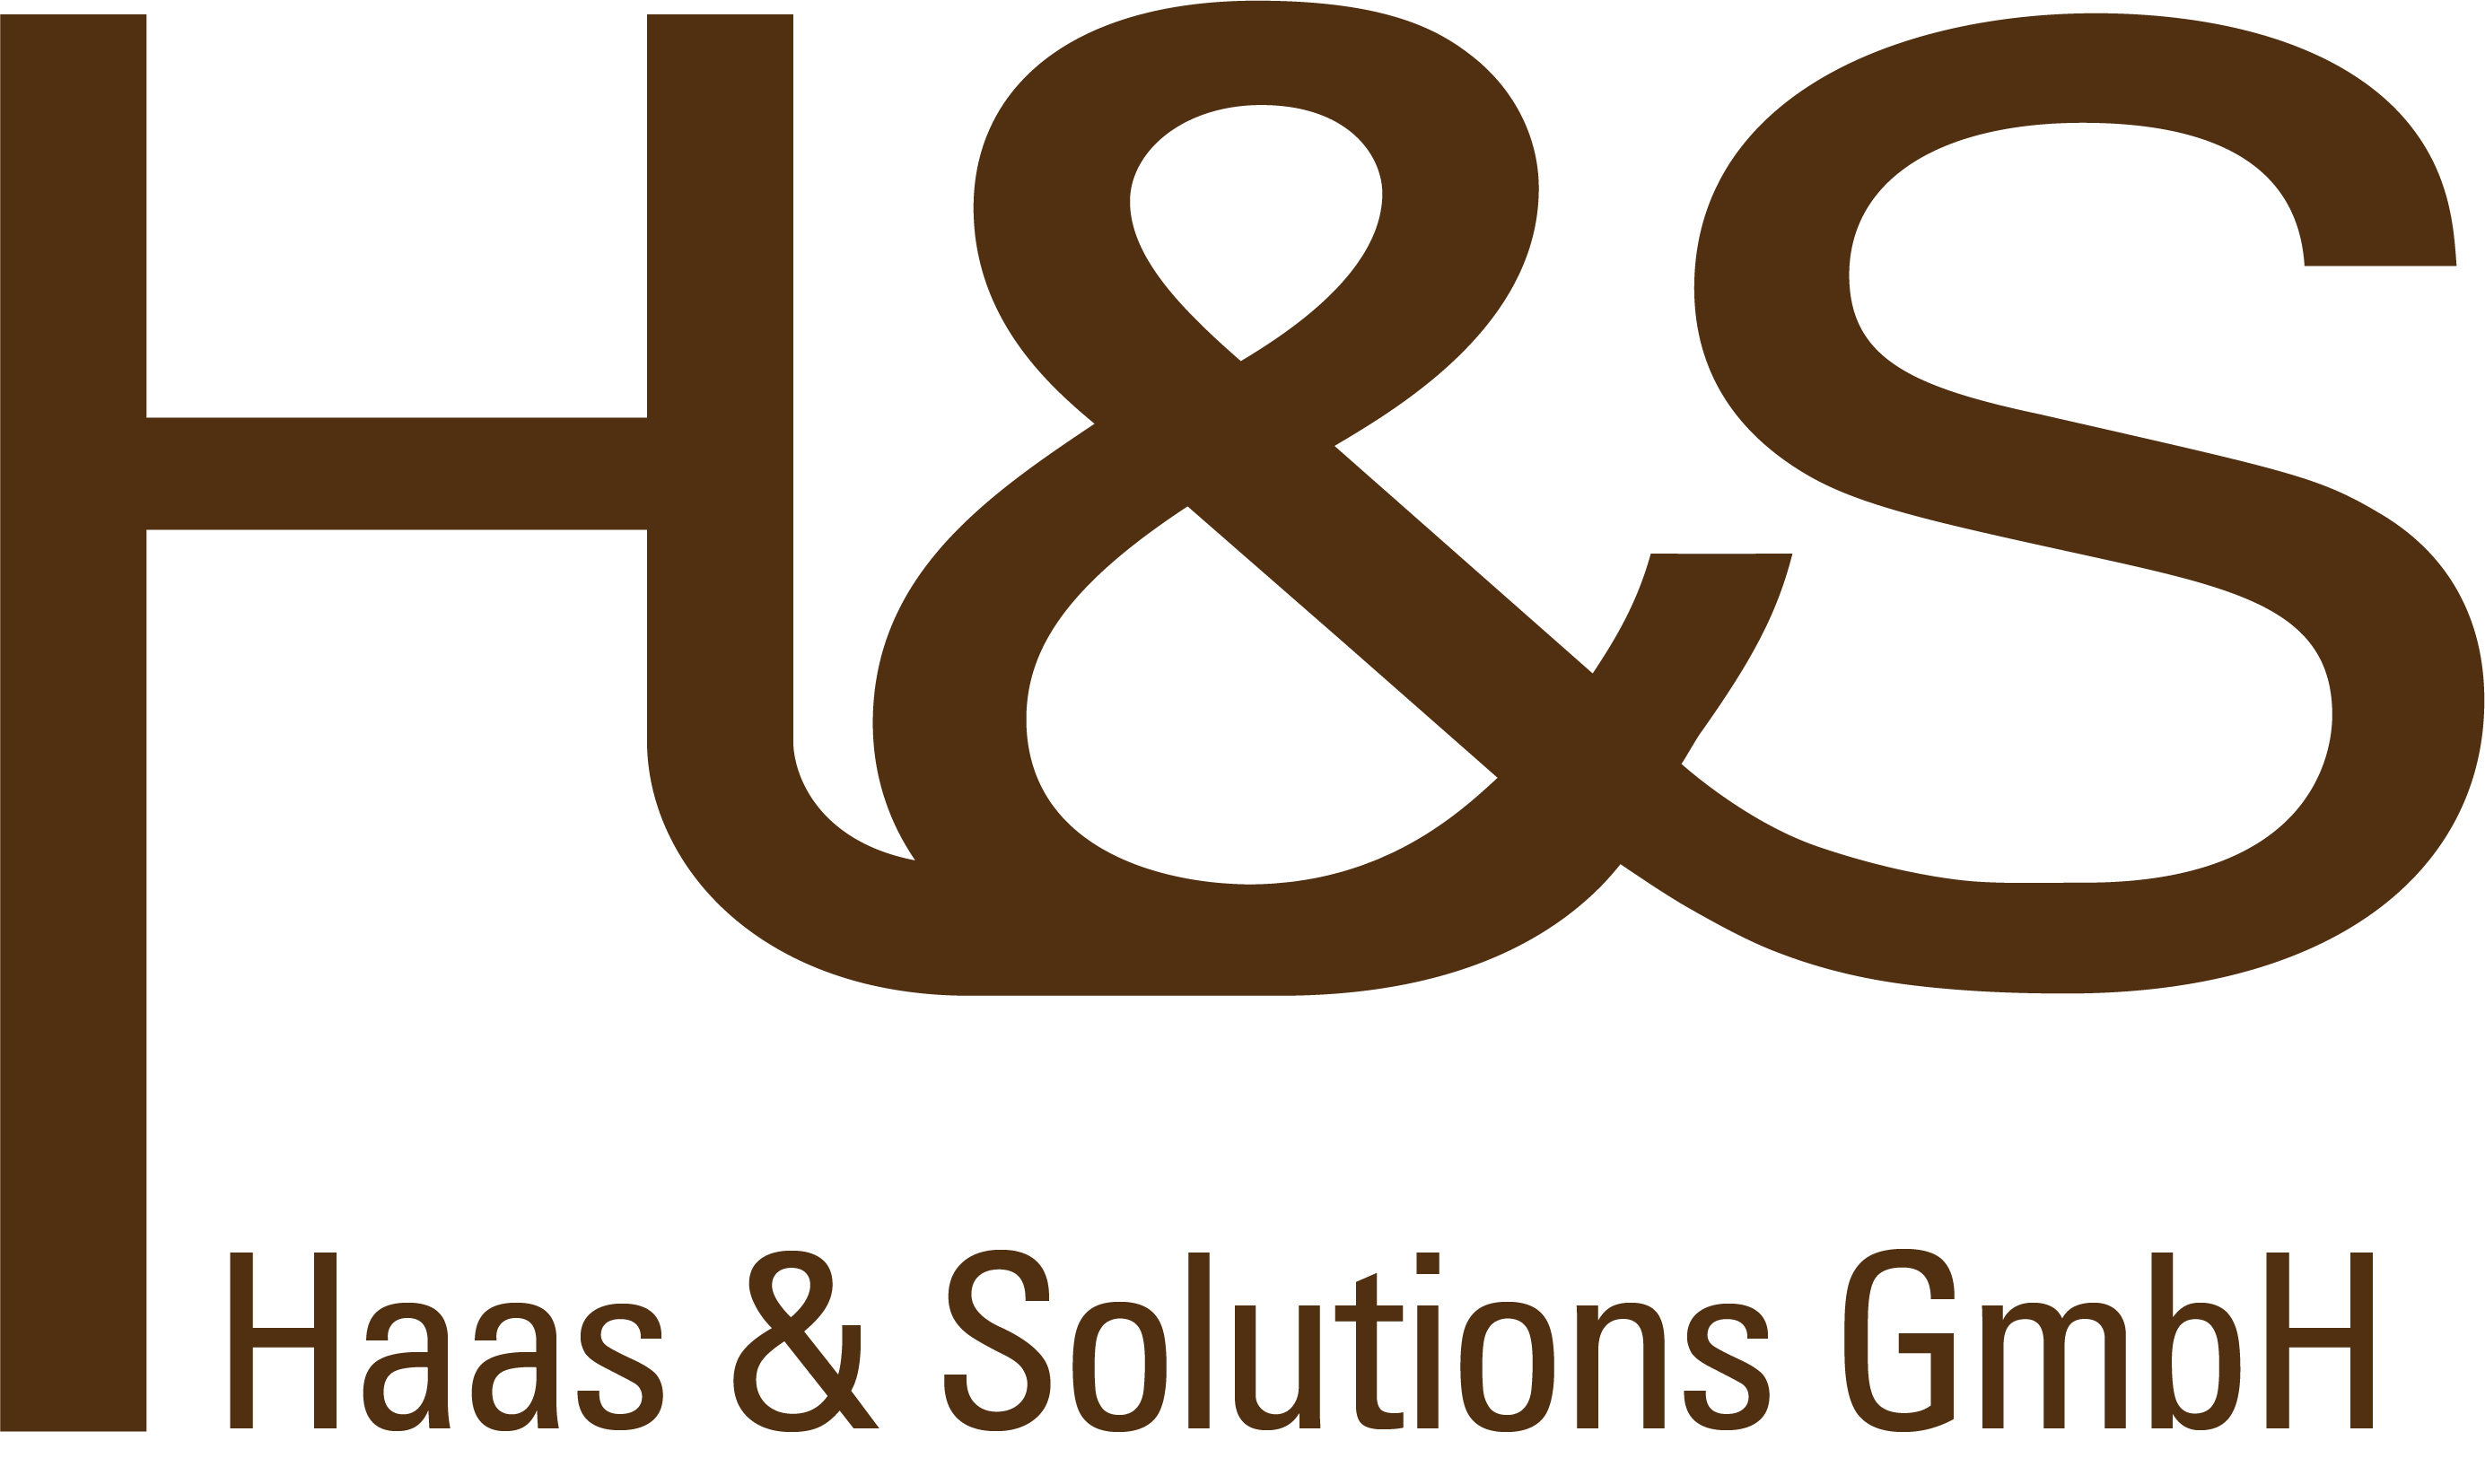 Haas & Solutions GmbH